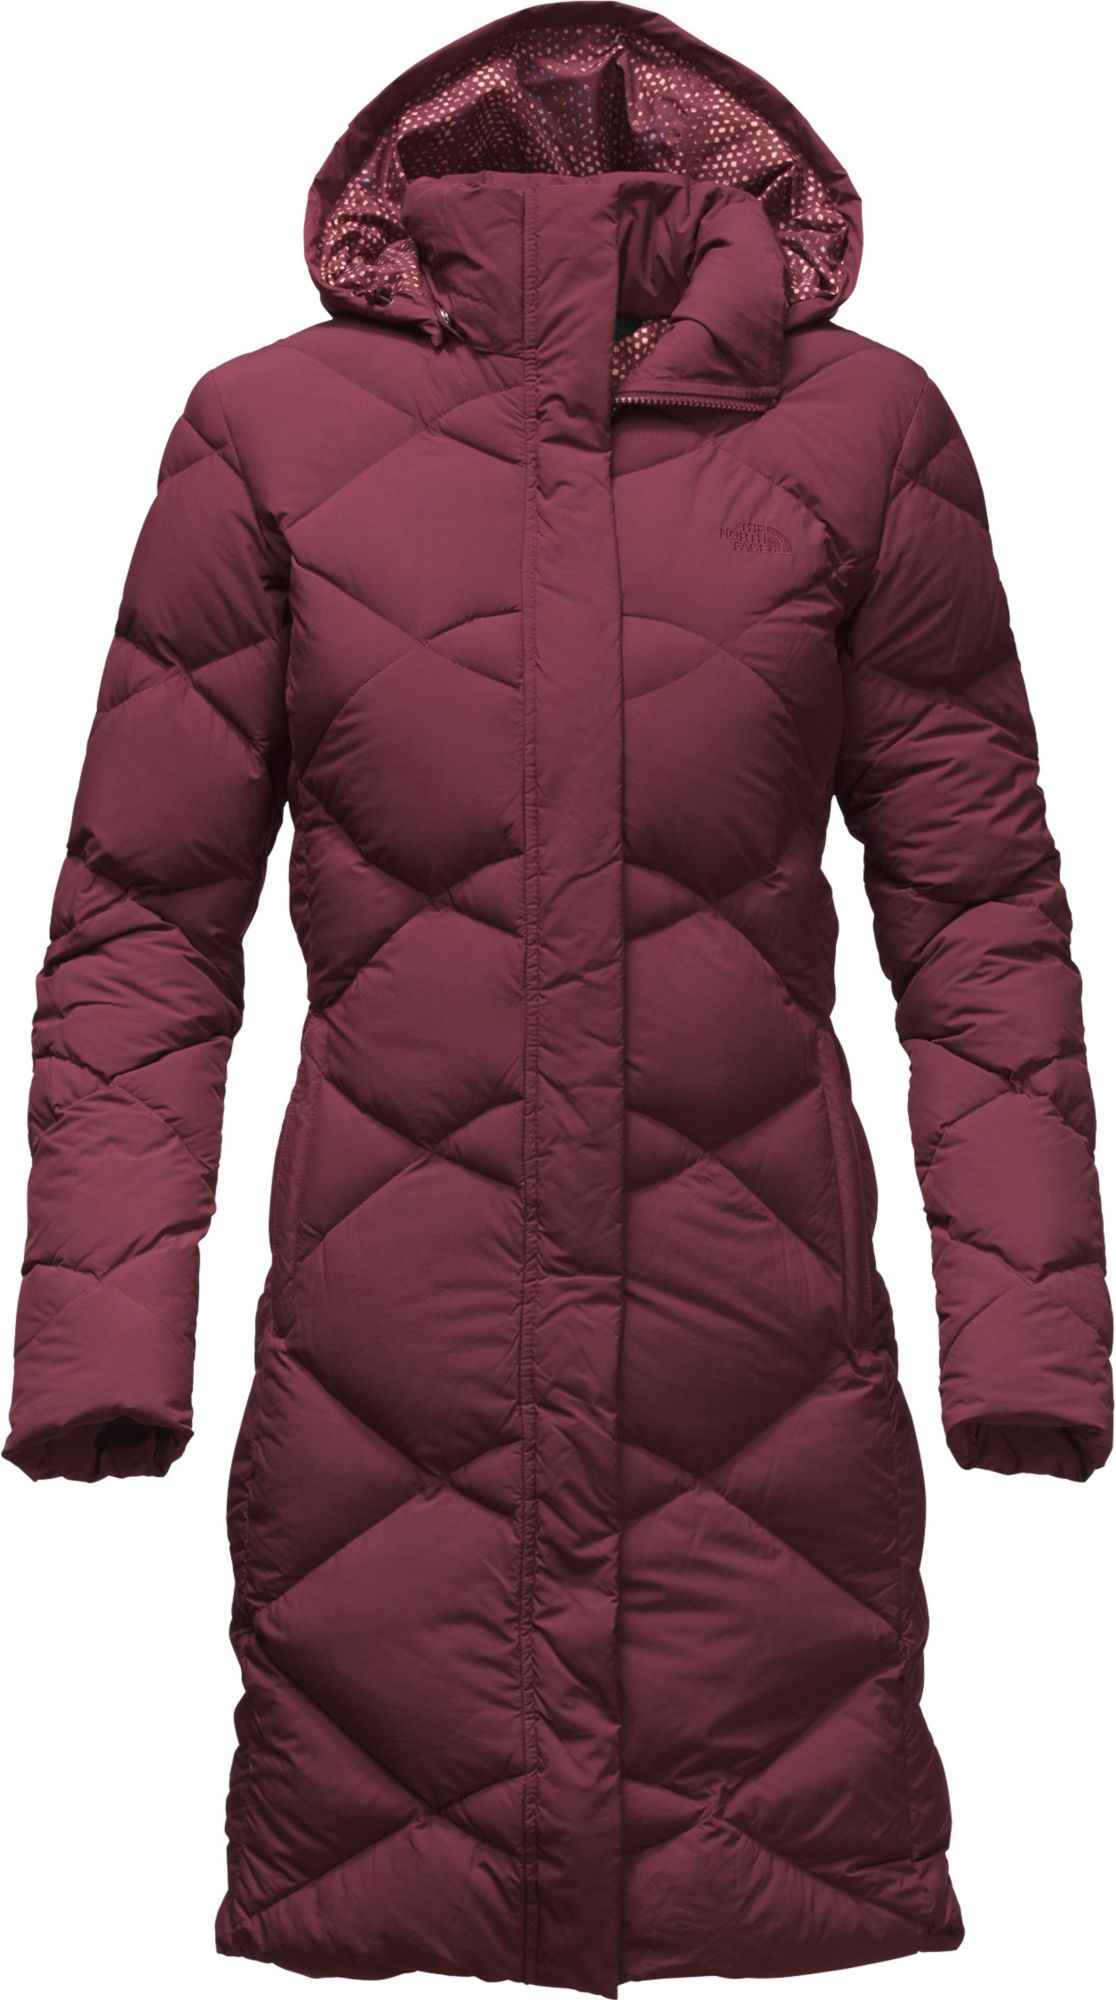 noImageFound ??? - The North Face Women's Miss Metro Down Jacket DICK'S Sporting Goods